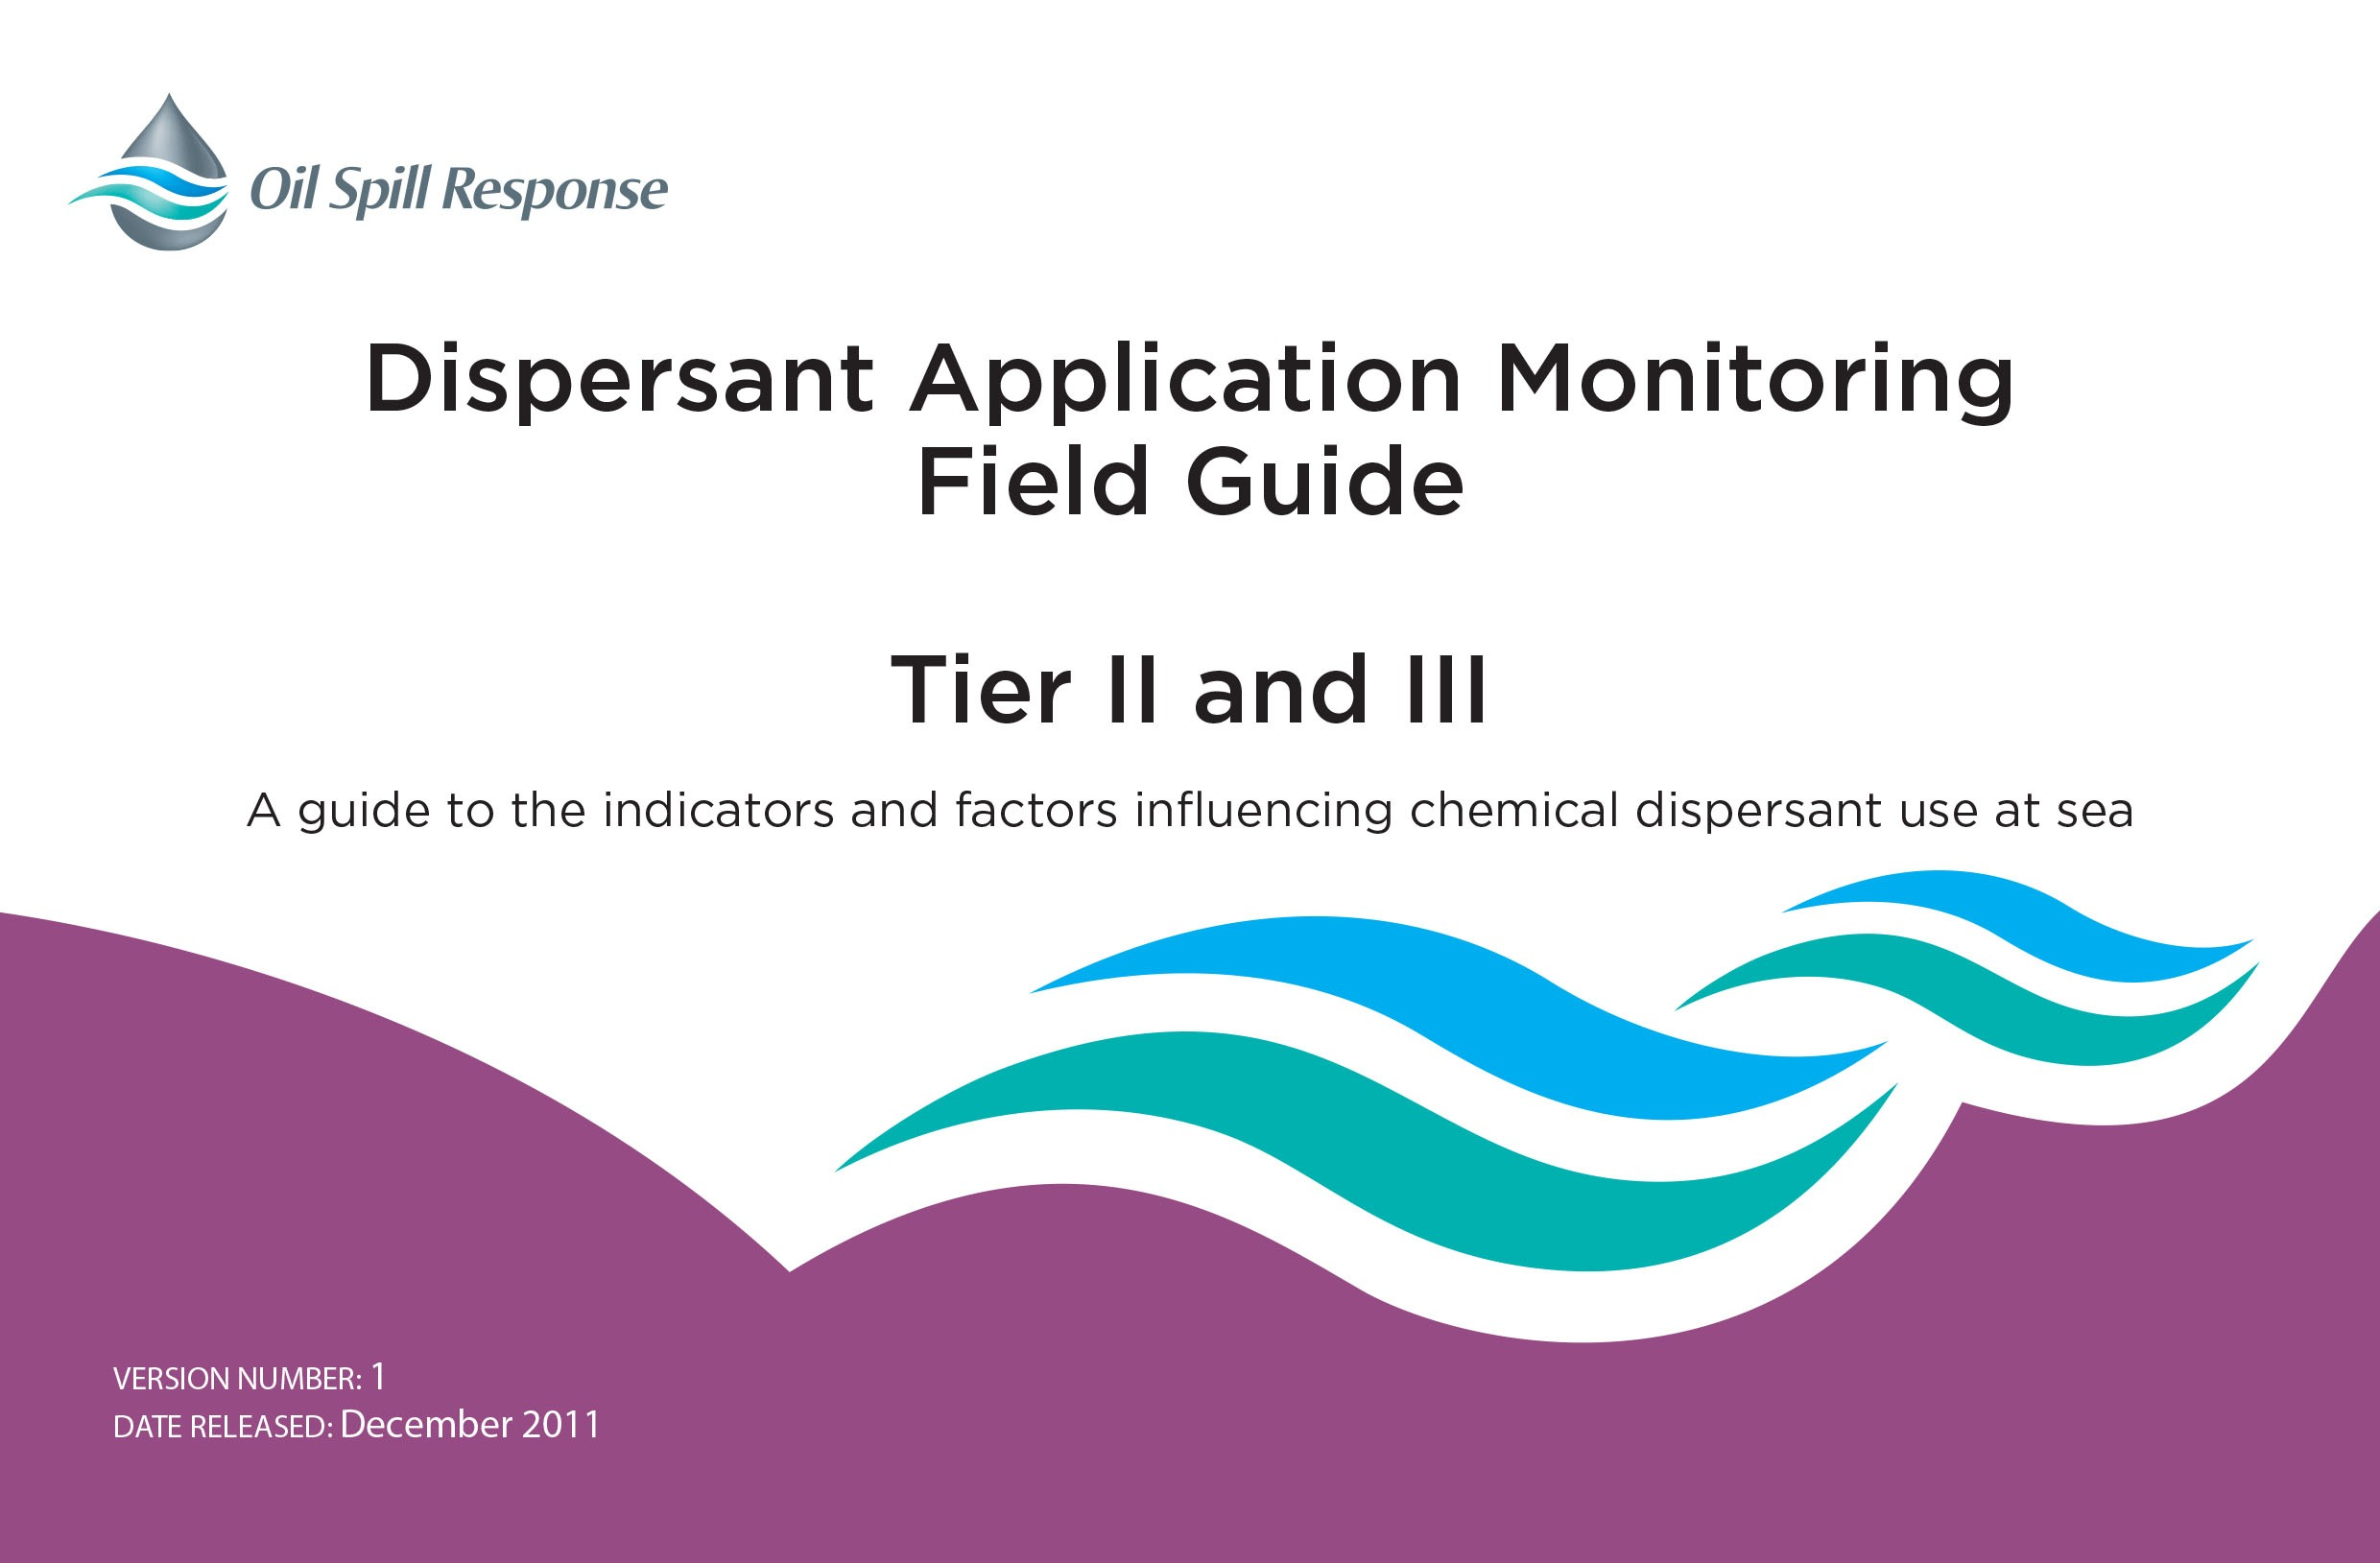 Dispersant Application Monitoring Field Guide - Tier II and III